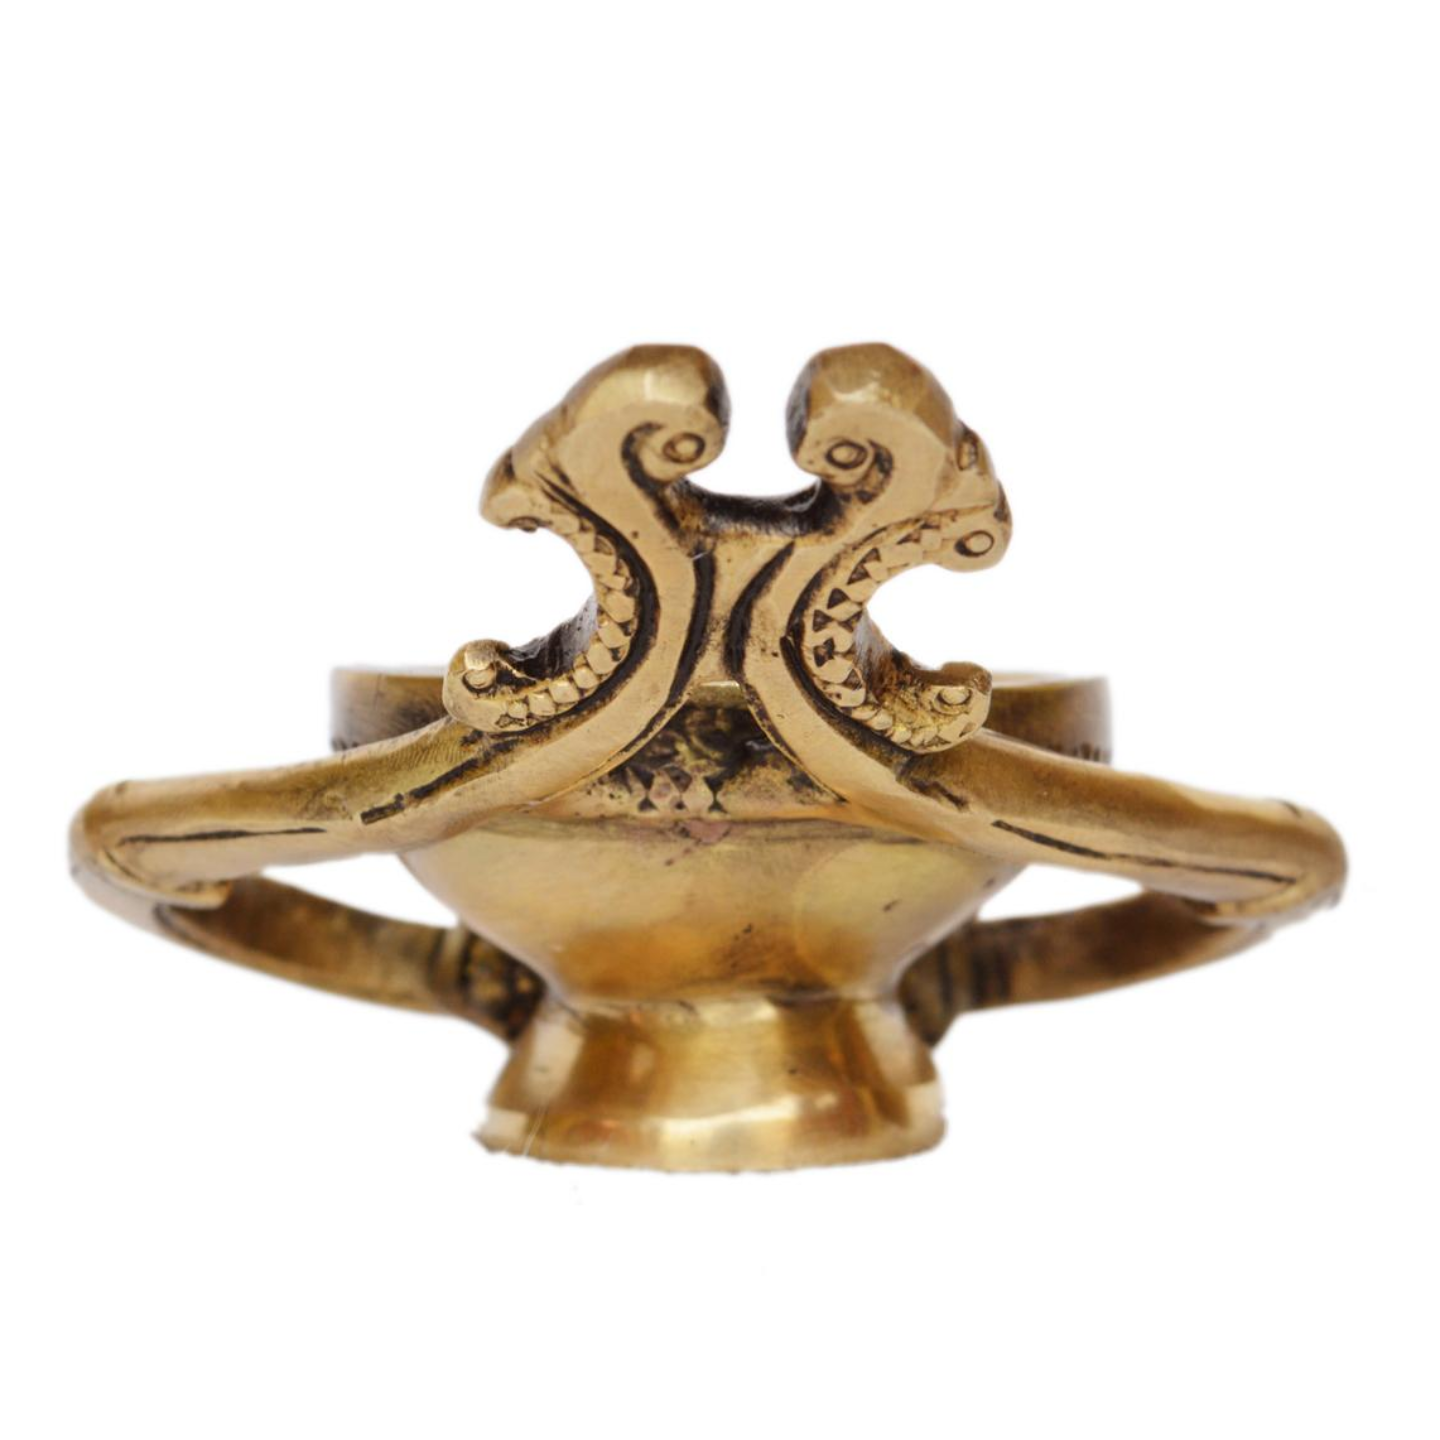 Brass Wick Brass Table Diya Peacock Oil Lotus Puja Home Decor Gift - 2 Inch (BS1161 A)